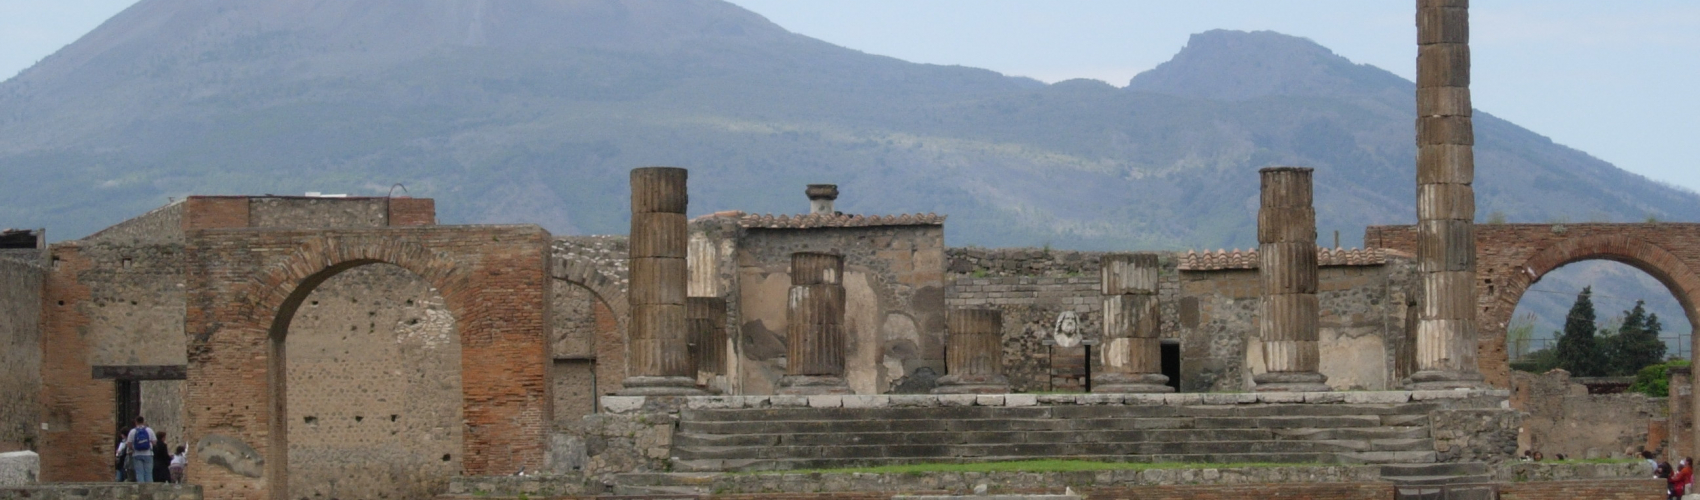 Pompeii with Vesuvius in background